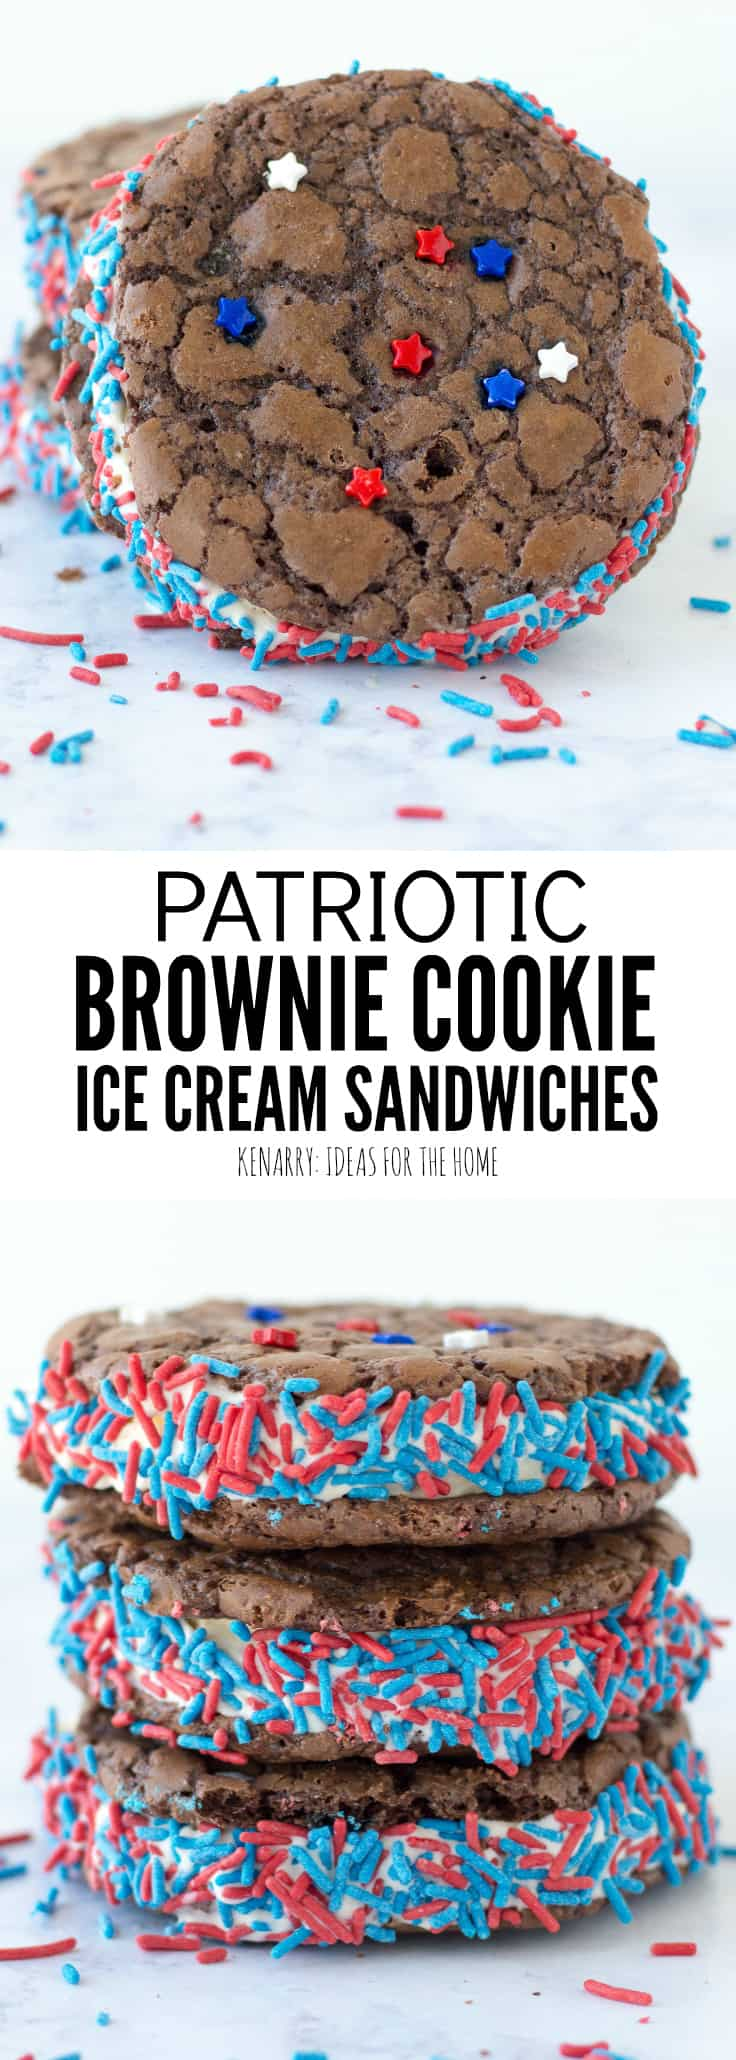 Learn how to turn a brownie mix into cookies to make the most amazing brownie ice cream sandwich recipe for summer. This easy patriotic dessert is the perfect red, white and blue chocolate treat for 4th of July, Memorial Day and Labor Day.